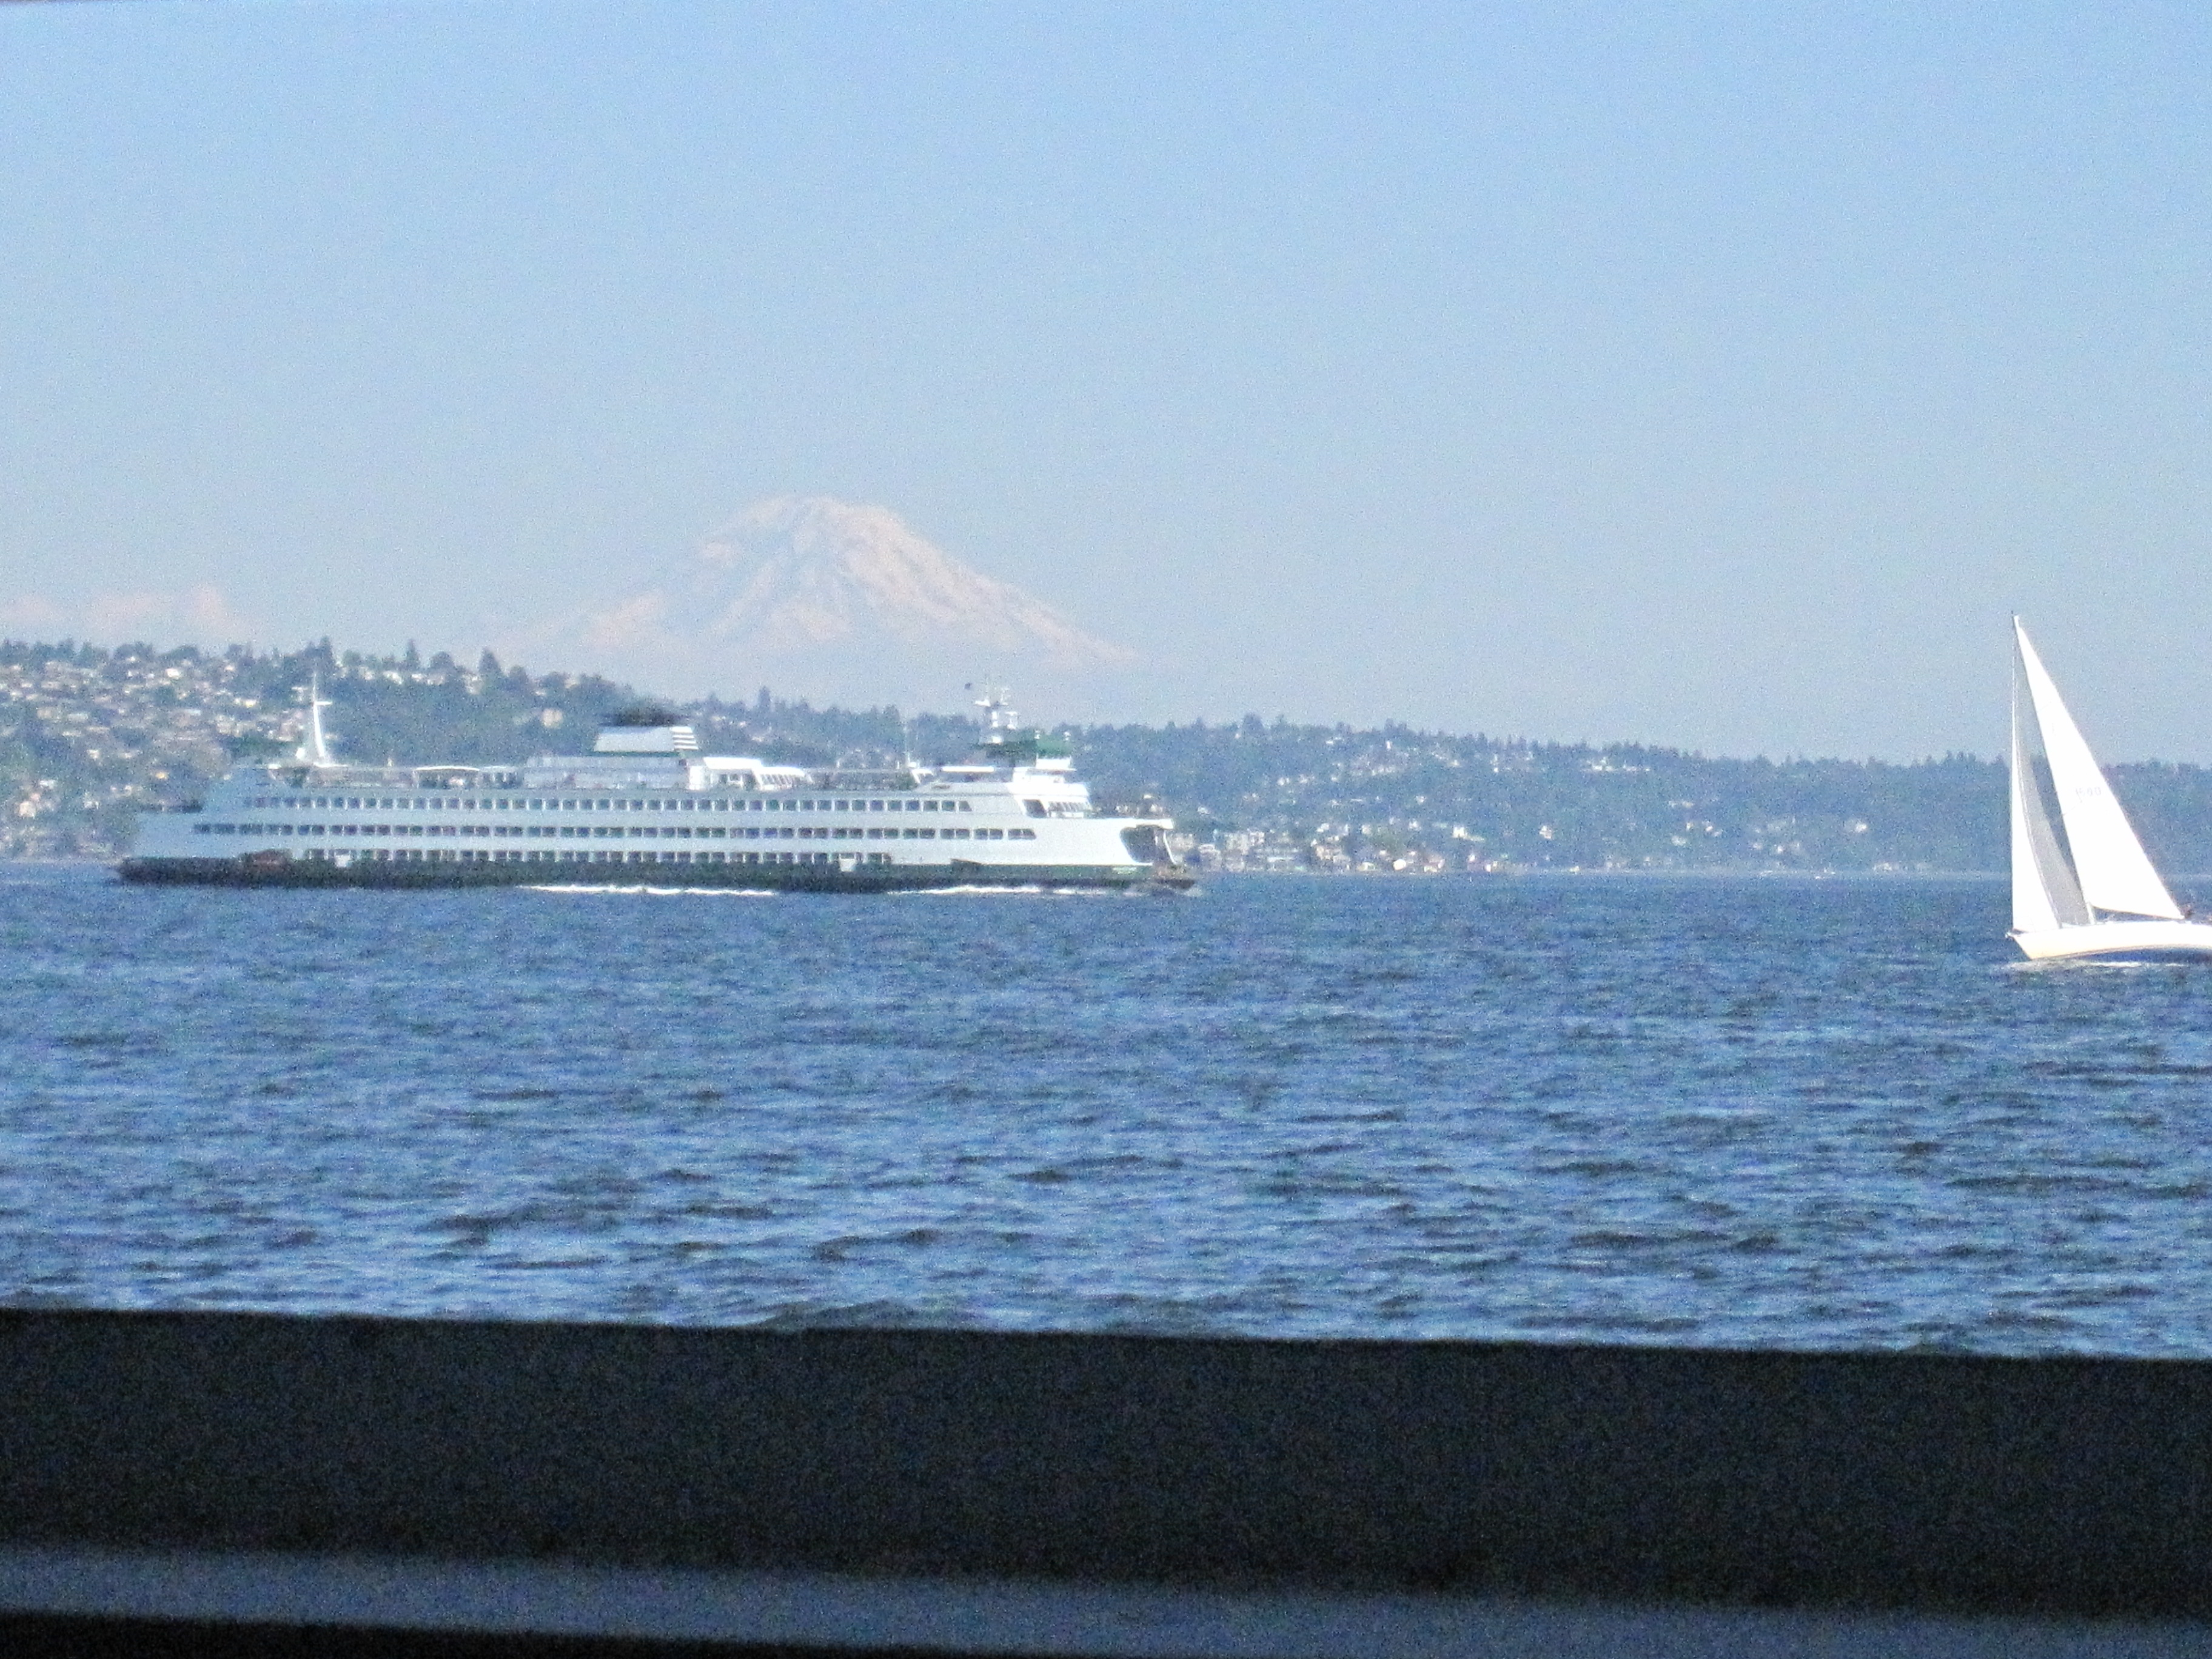 Ferries crossing Puget Sound with Mt Rainier in the background